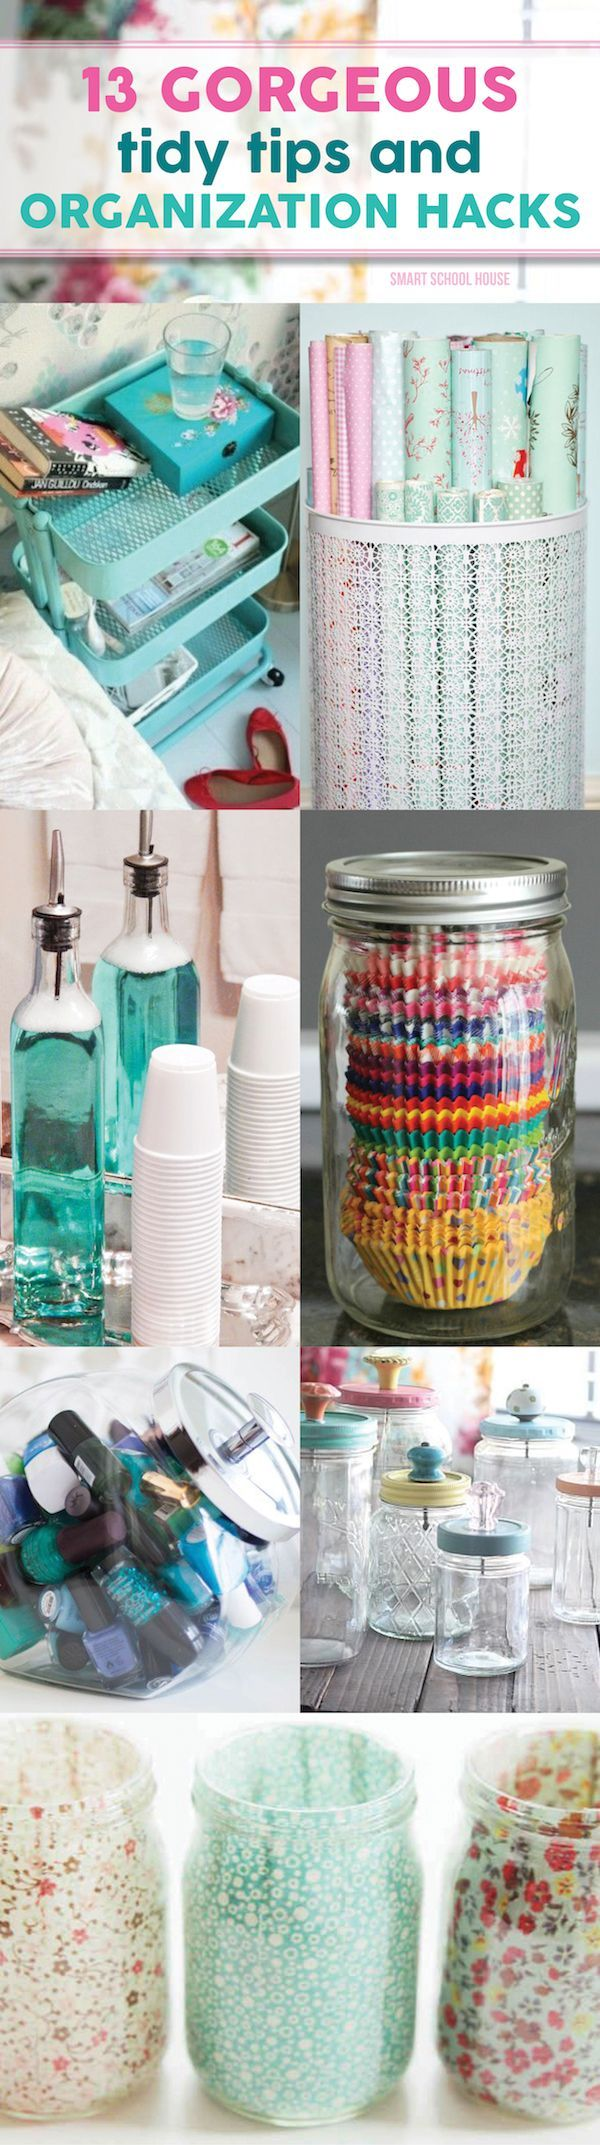 13 Gorgeous Tidy Tips and Organization Hacks